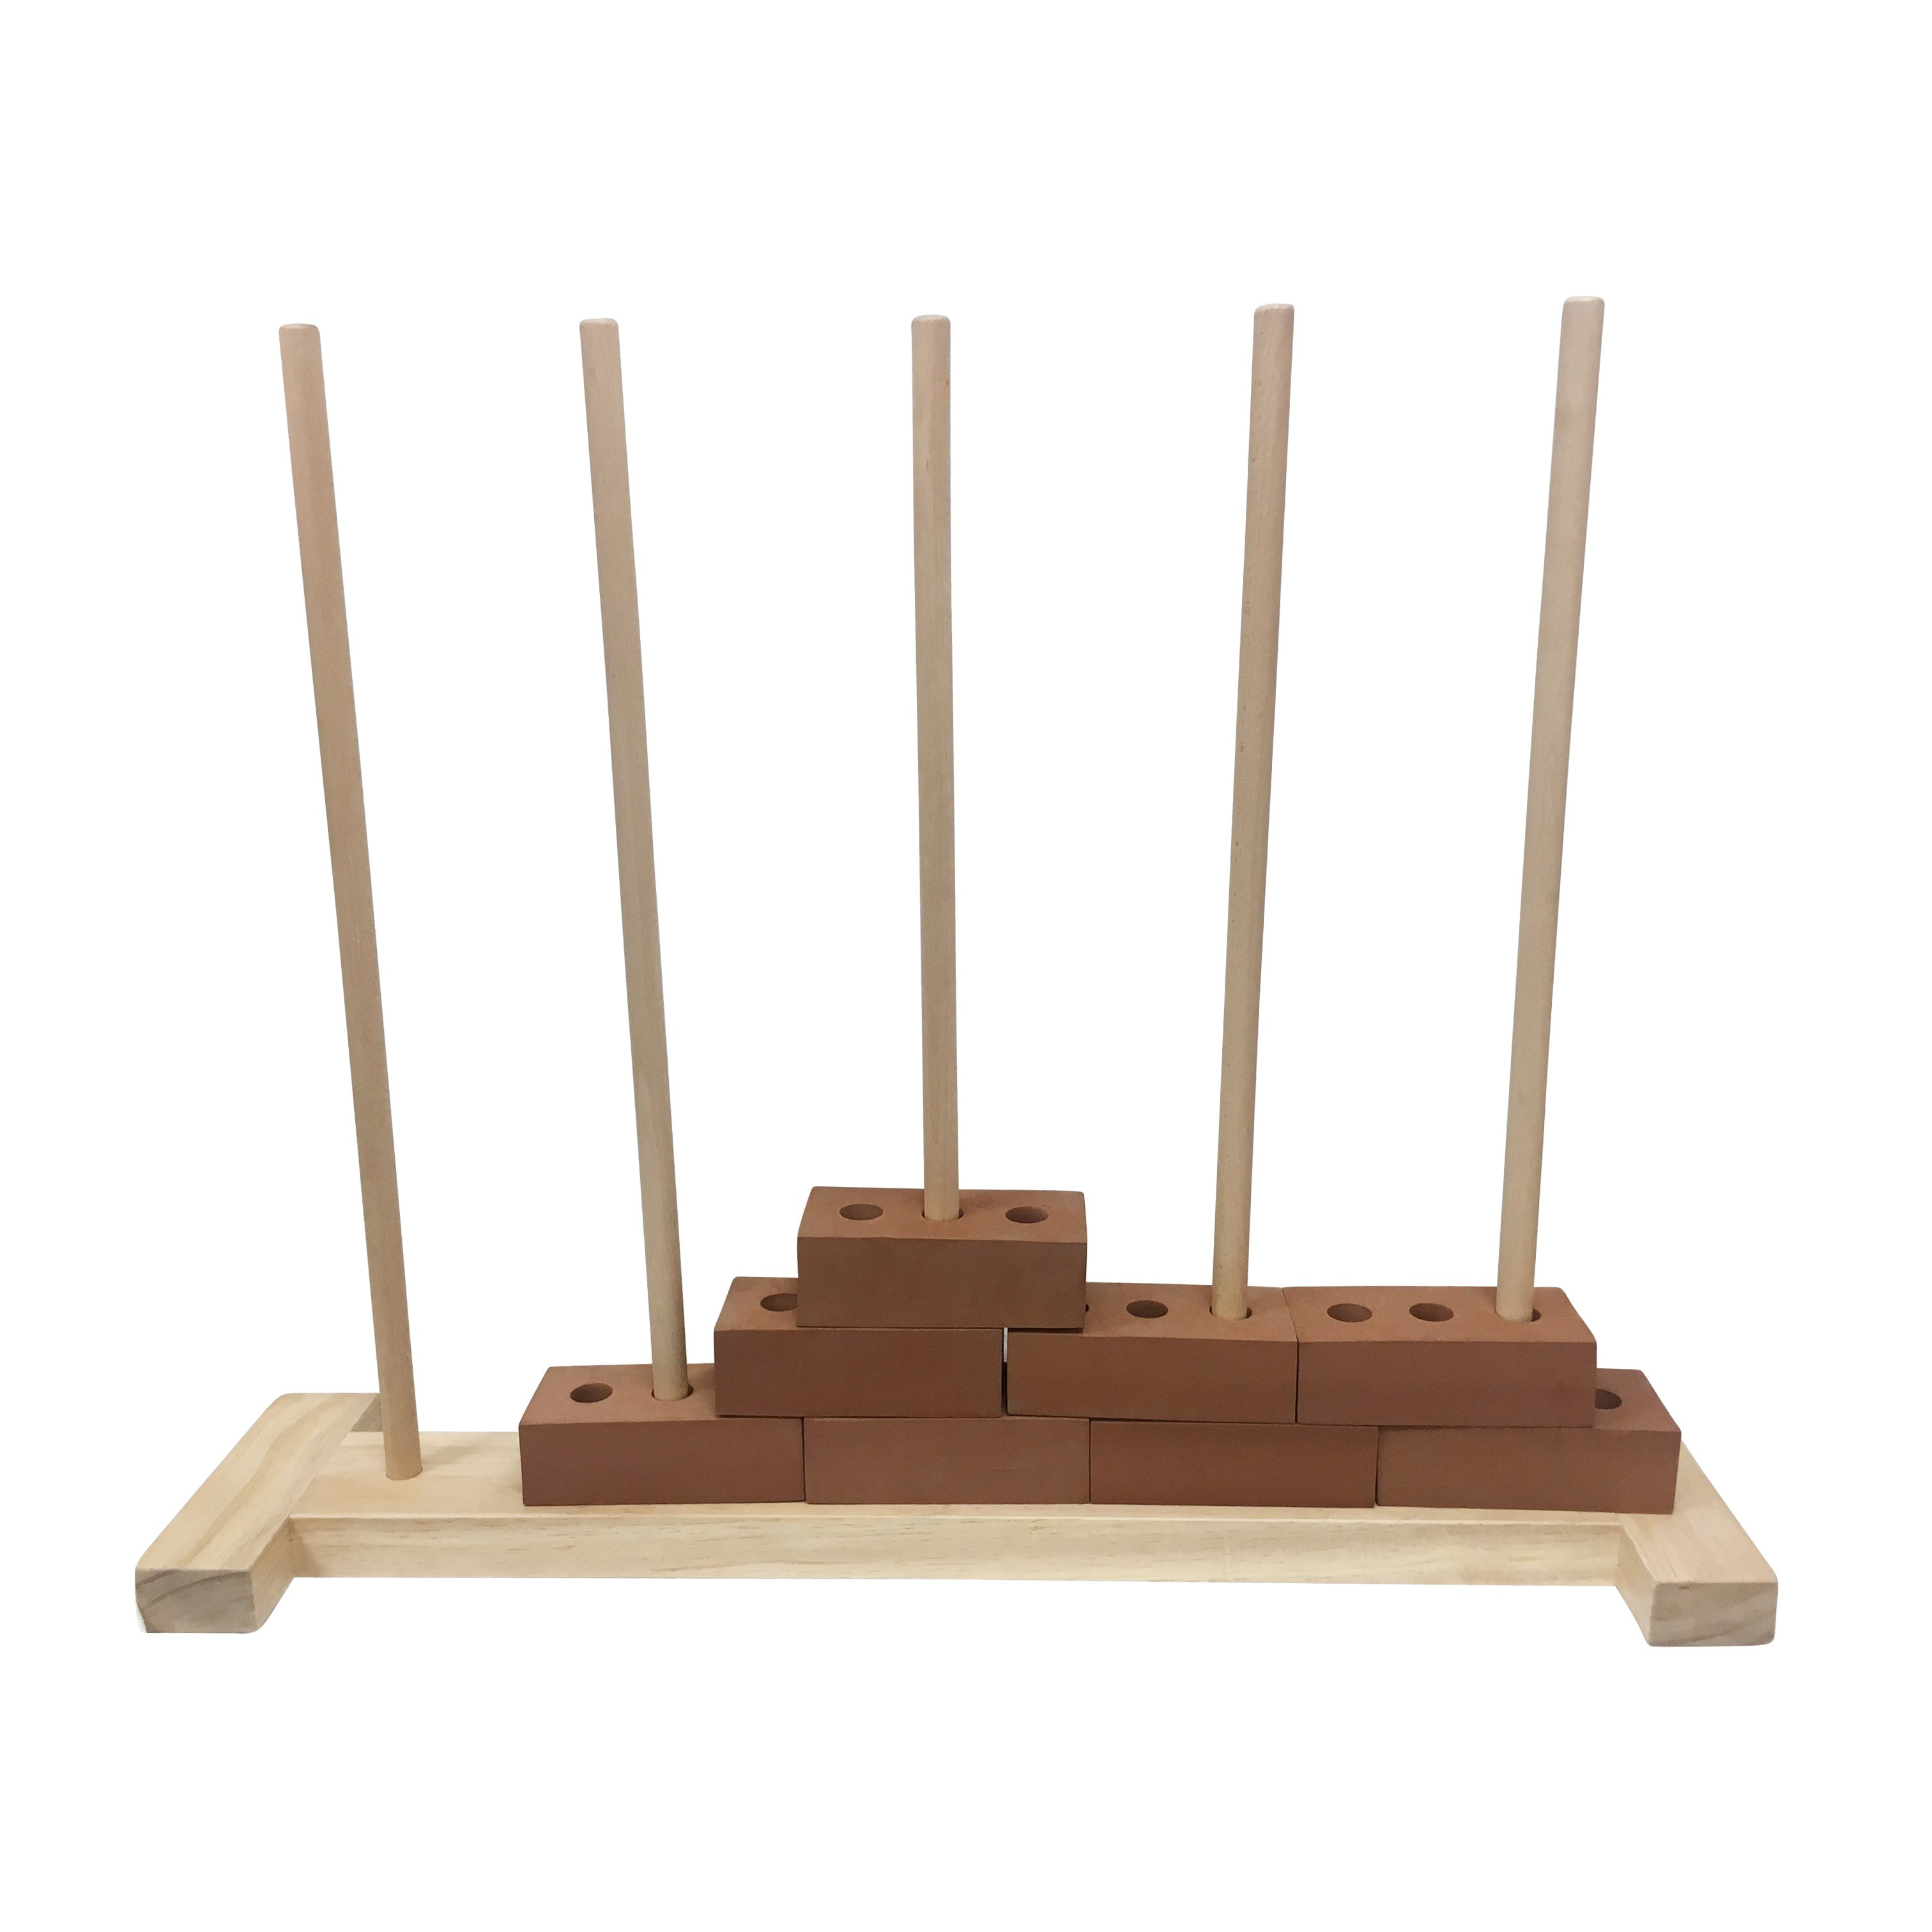 SYWS1 Foam Brick Wooden Stand b copy